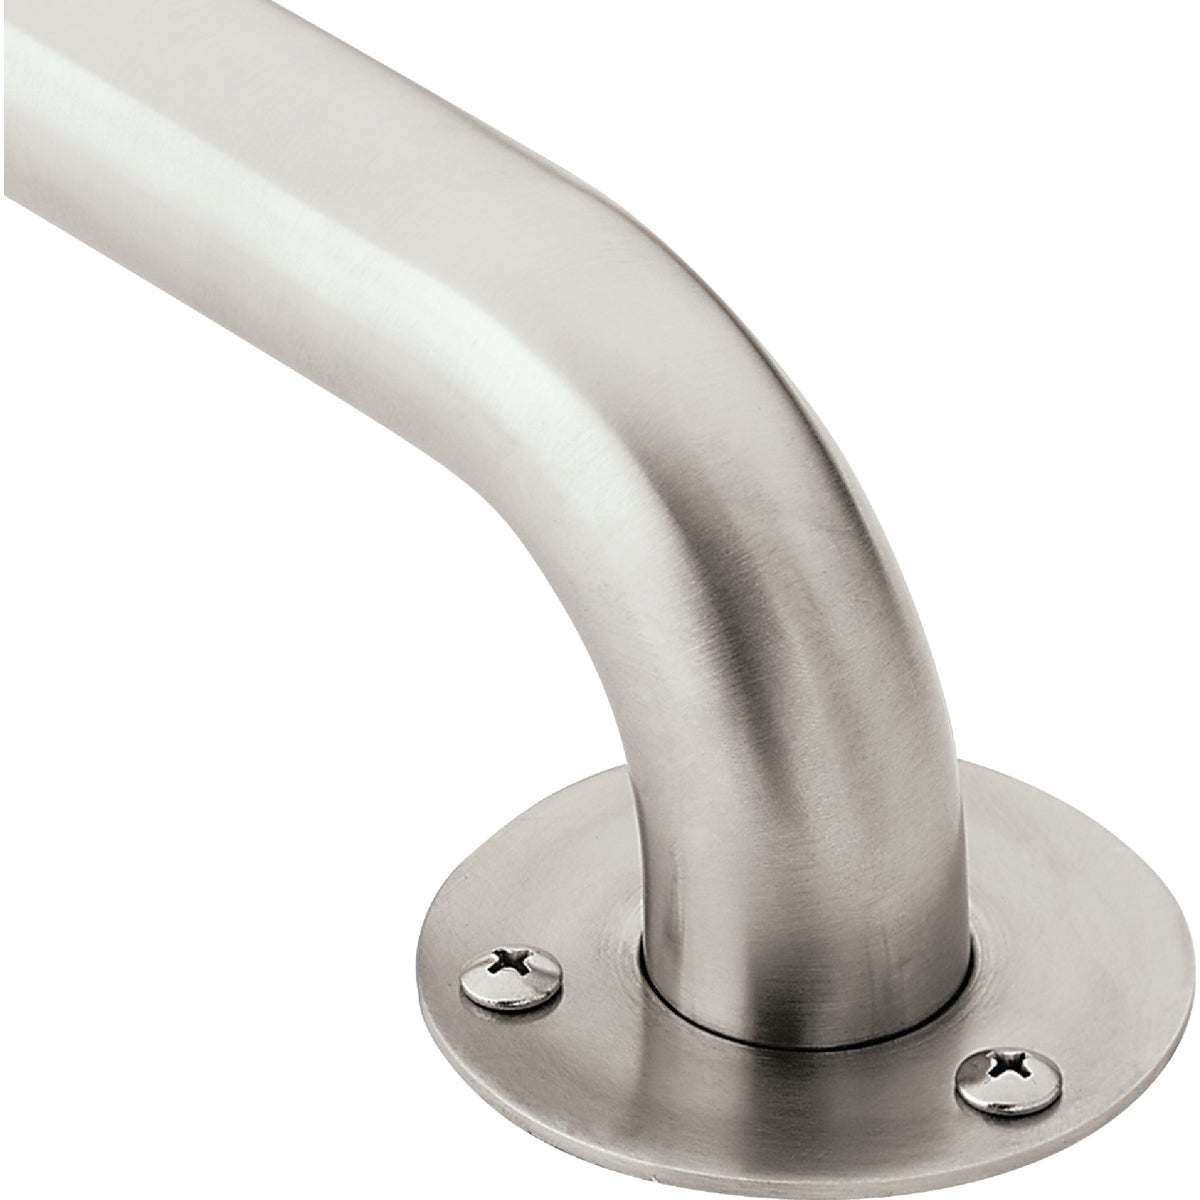 "SS 24"" EXPOSED GRAB BAR - LR7524 by C S I Donner"